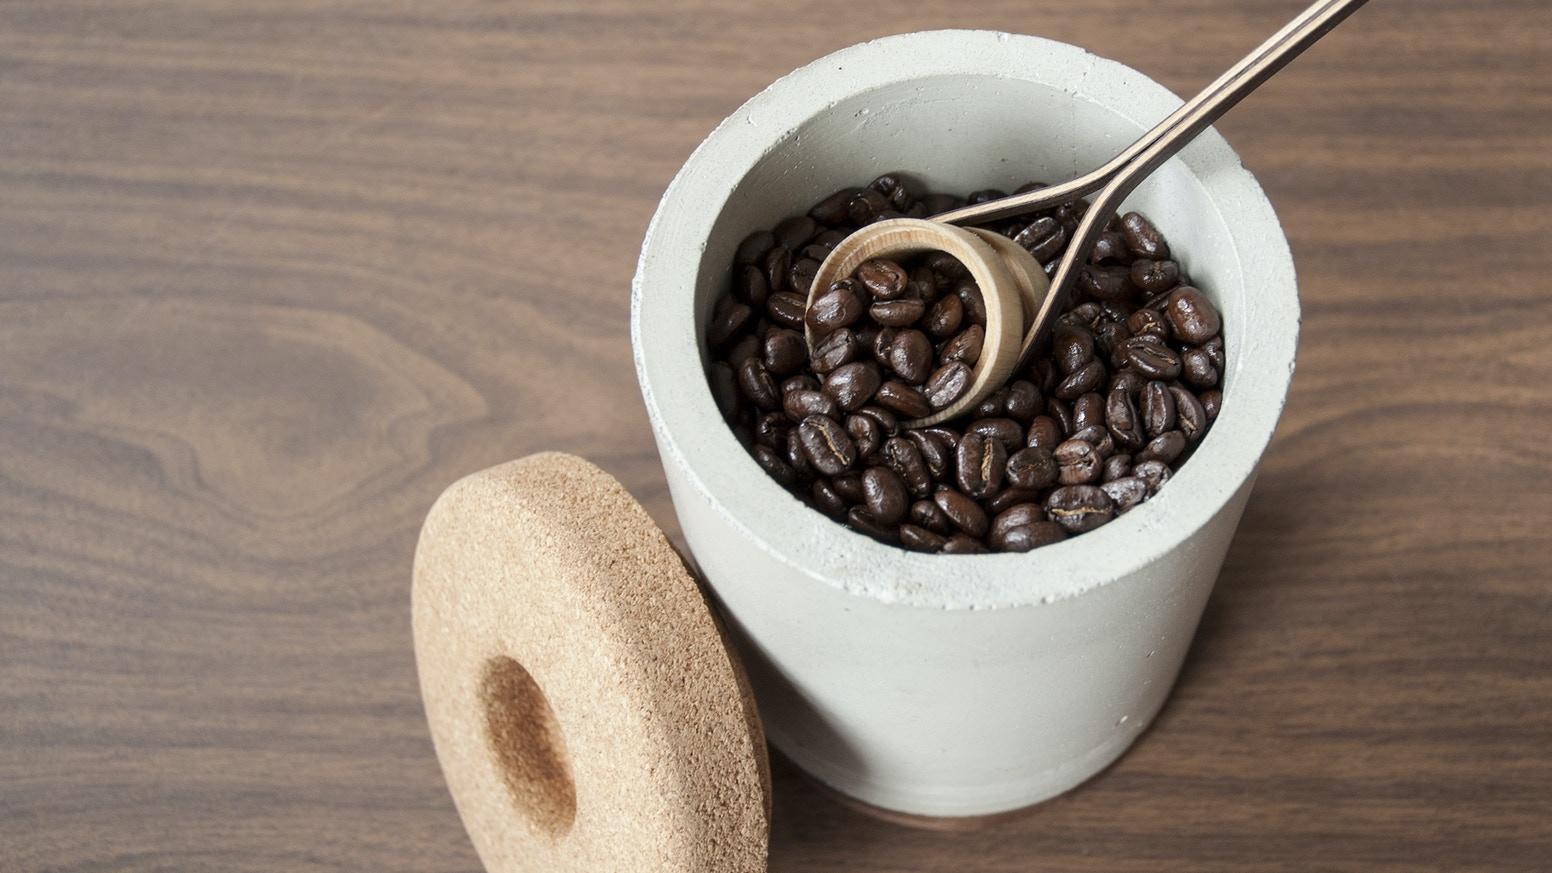 A modern storage vessel designed to preserve coffee in an optimal environment.